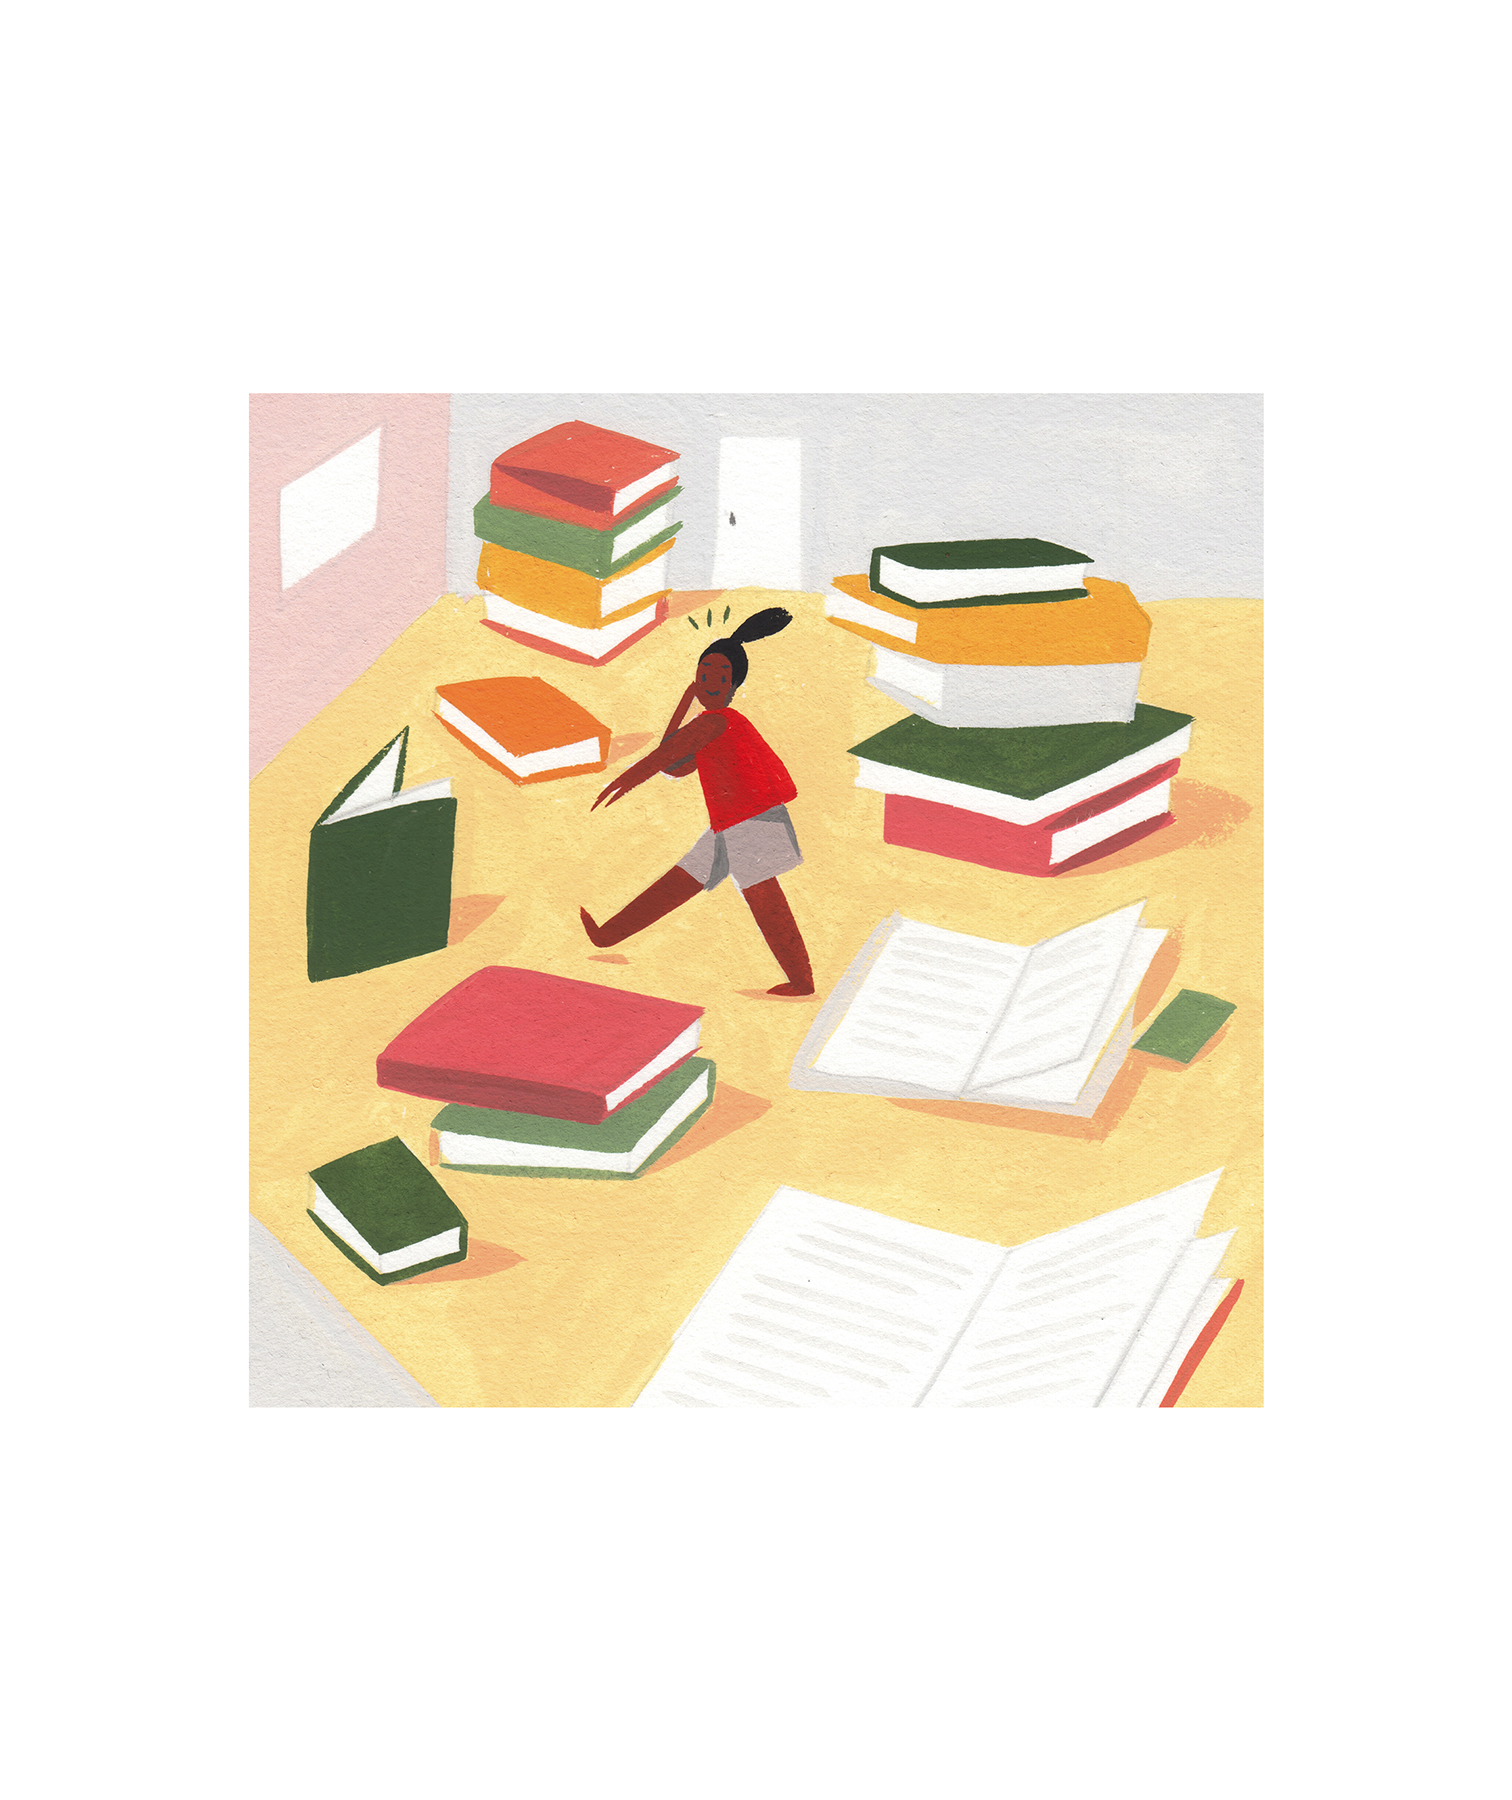 Illustration: Kid in room full of giant books